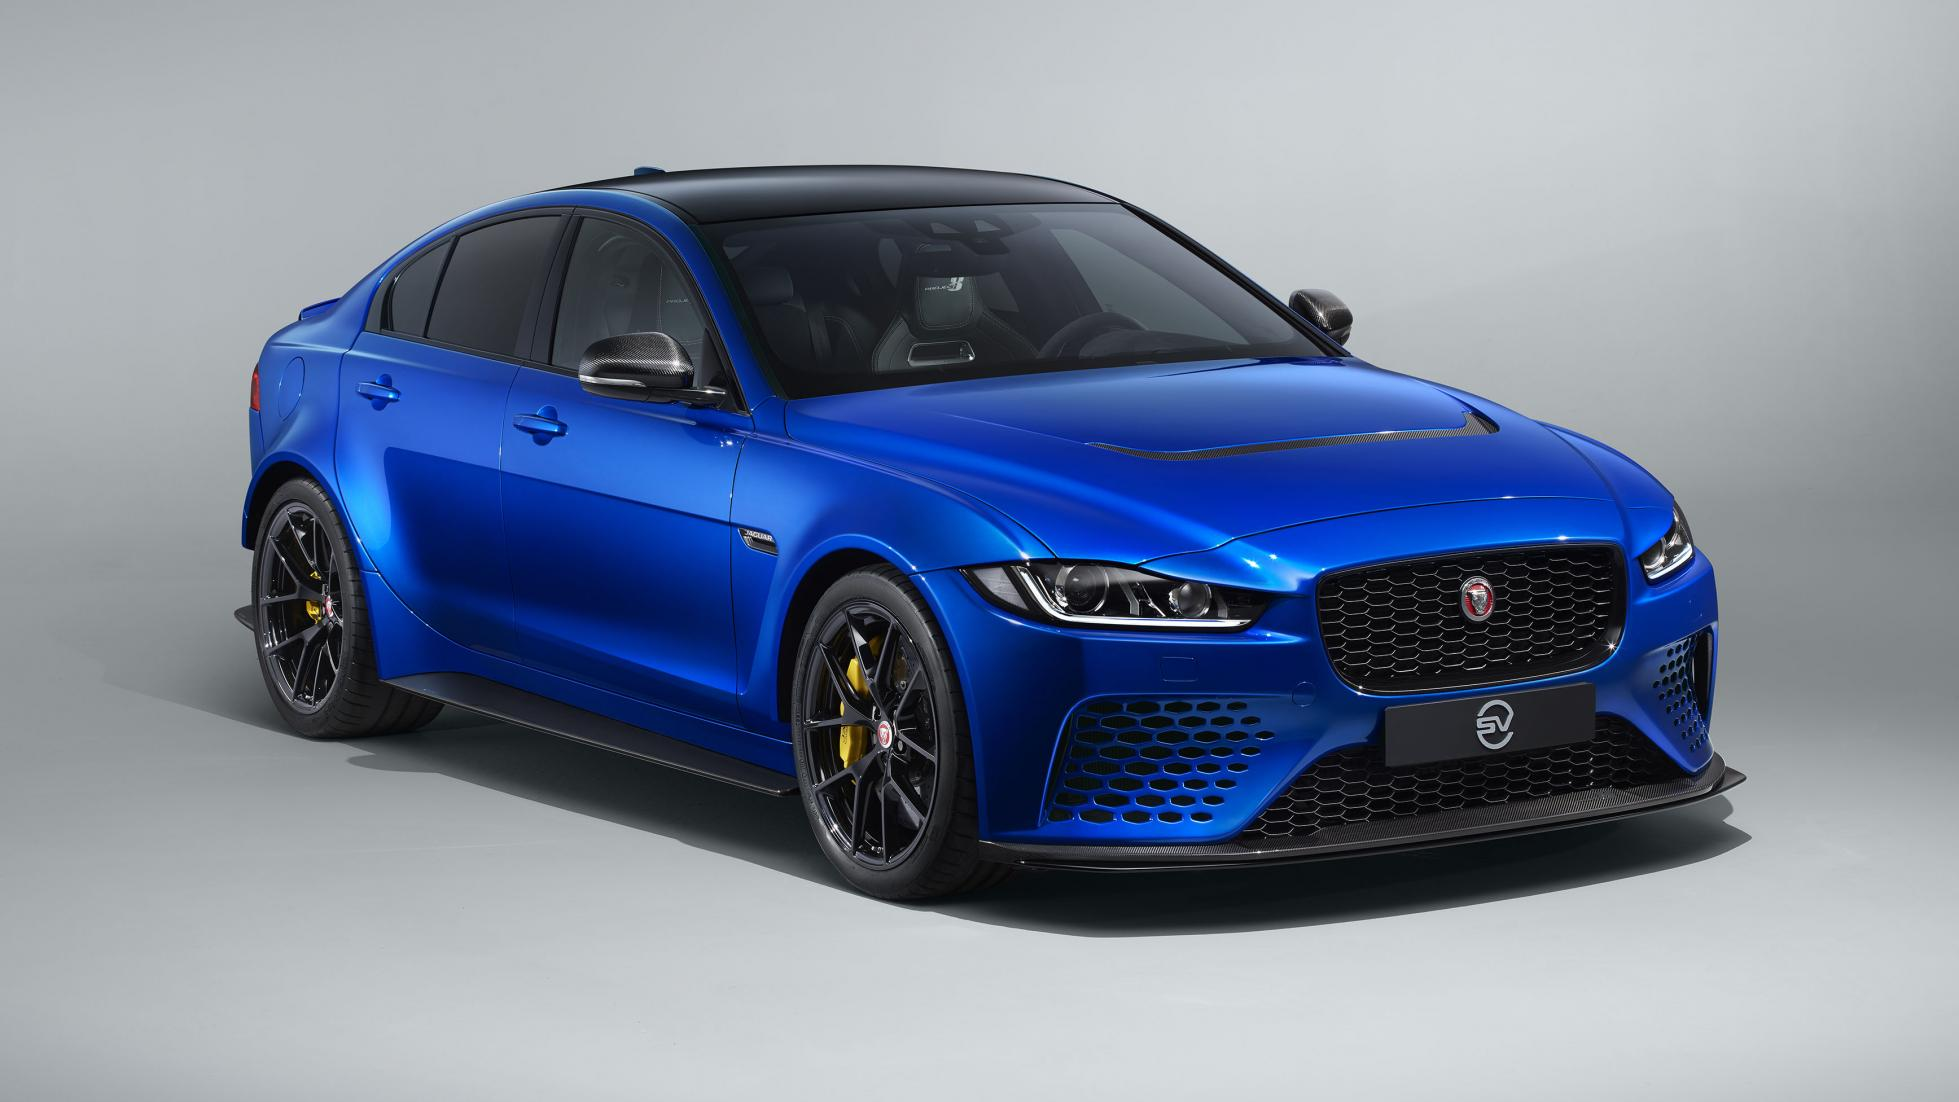 Jaguar project 8 voorkant